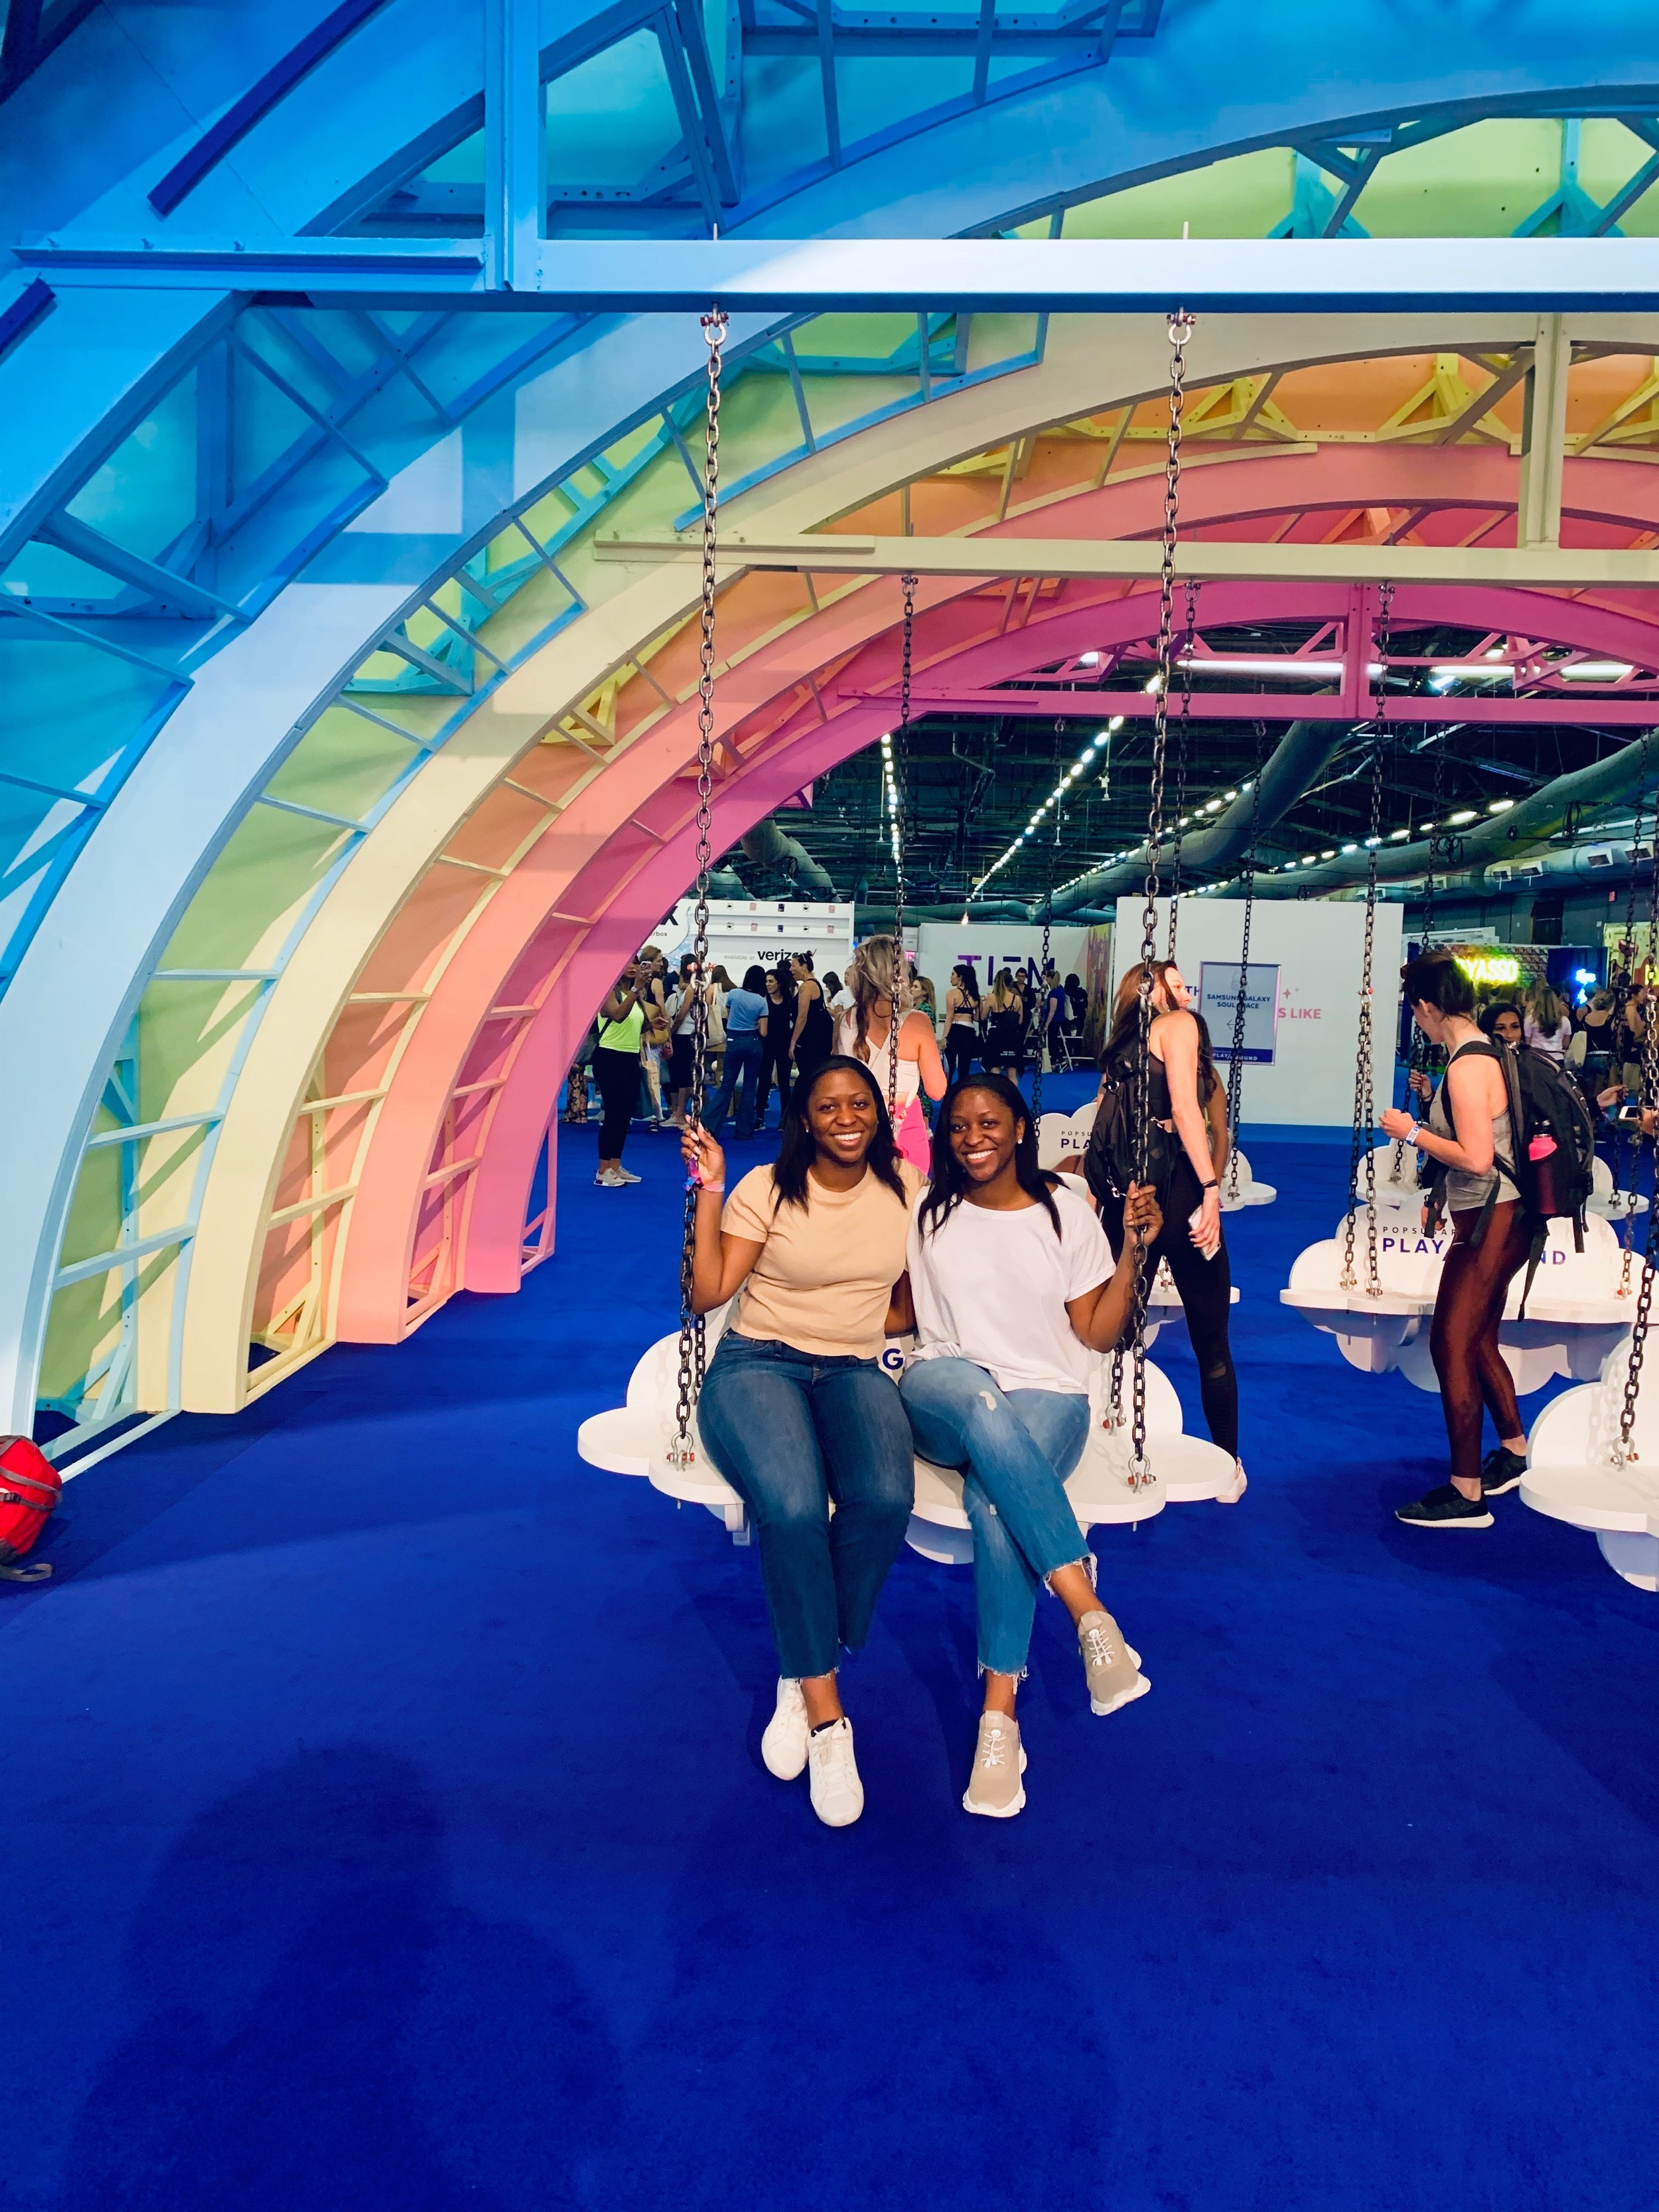 Our Experience at PopSugar Play/Ground   Health and Wellness   Festival   Fitness